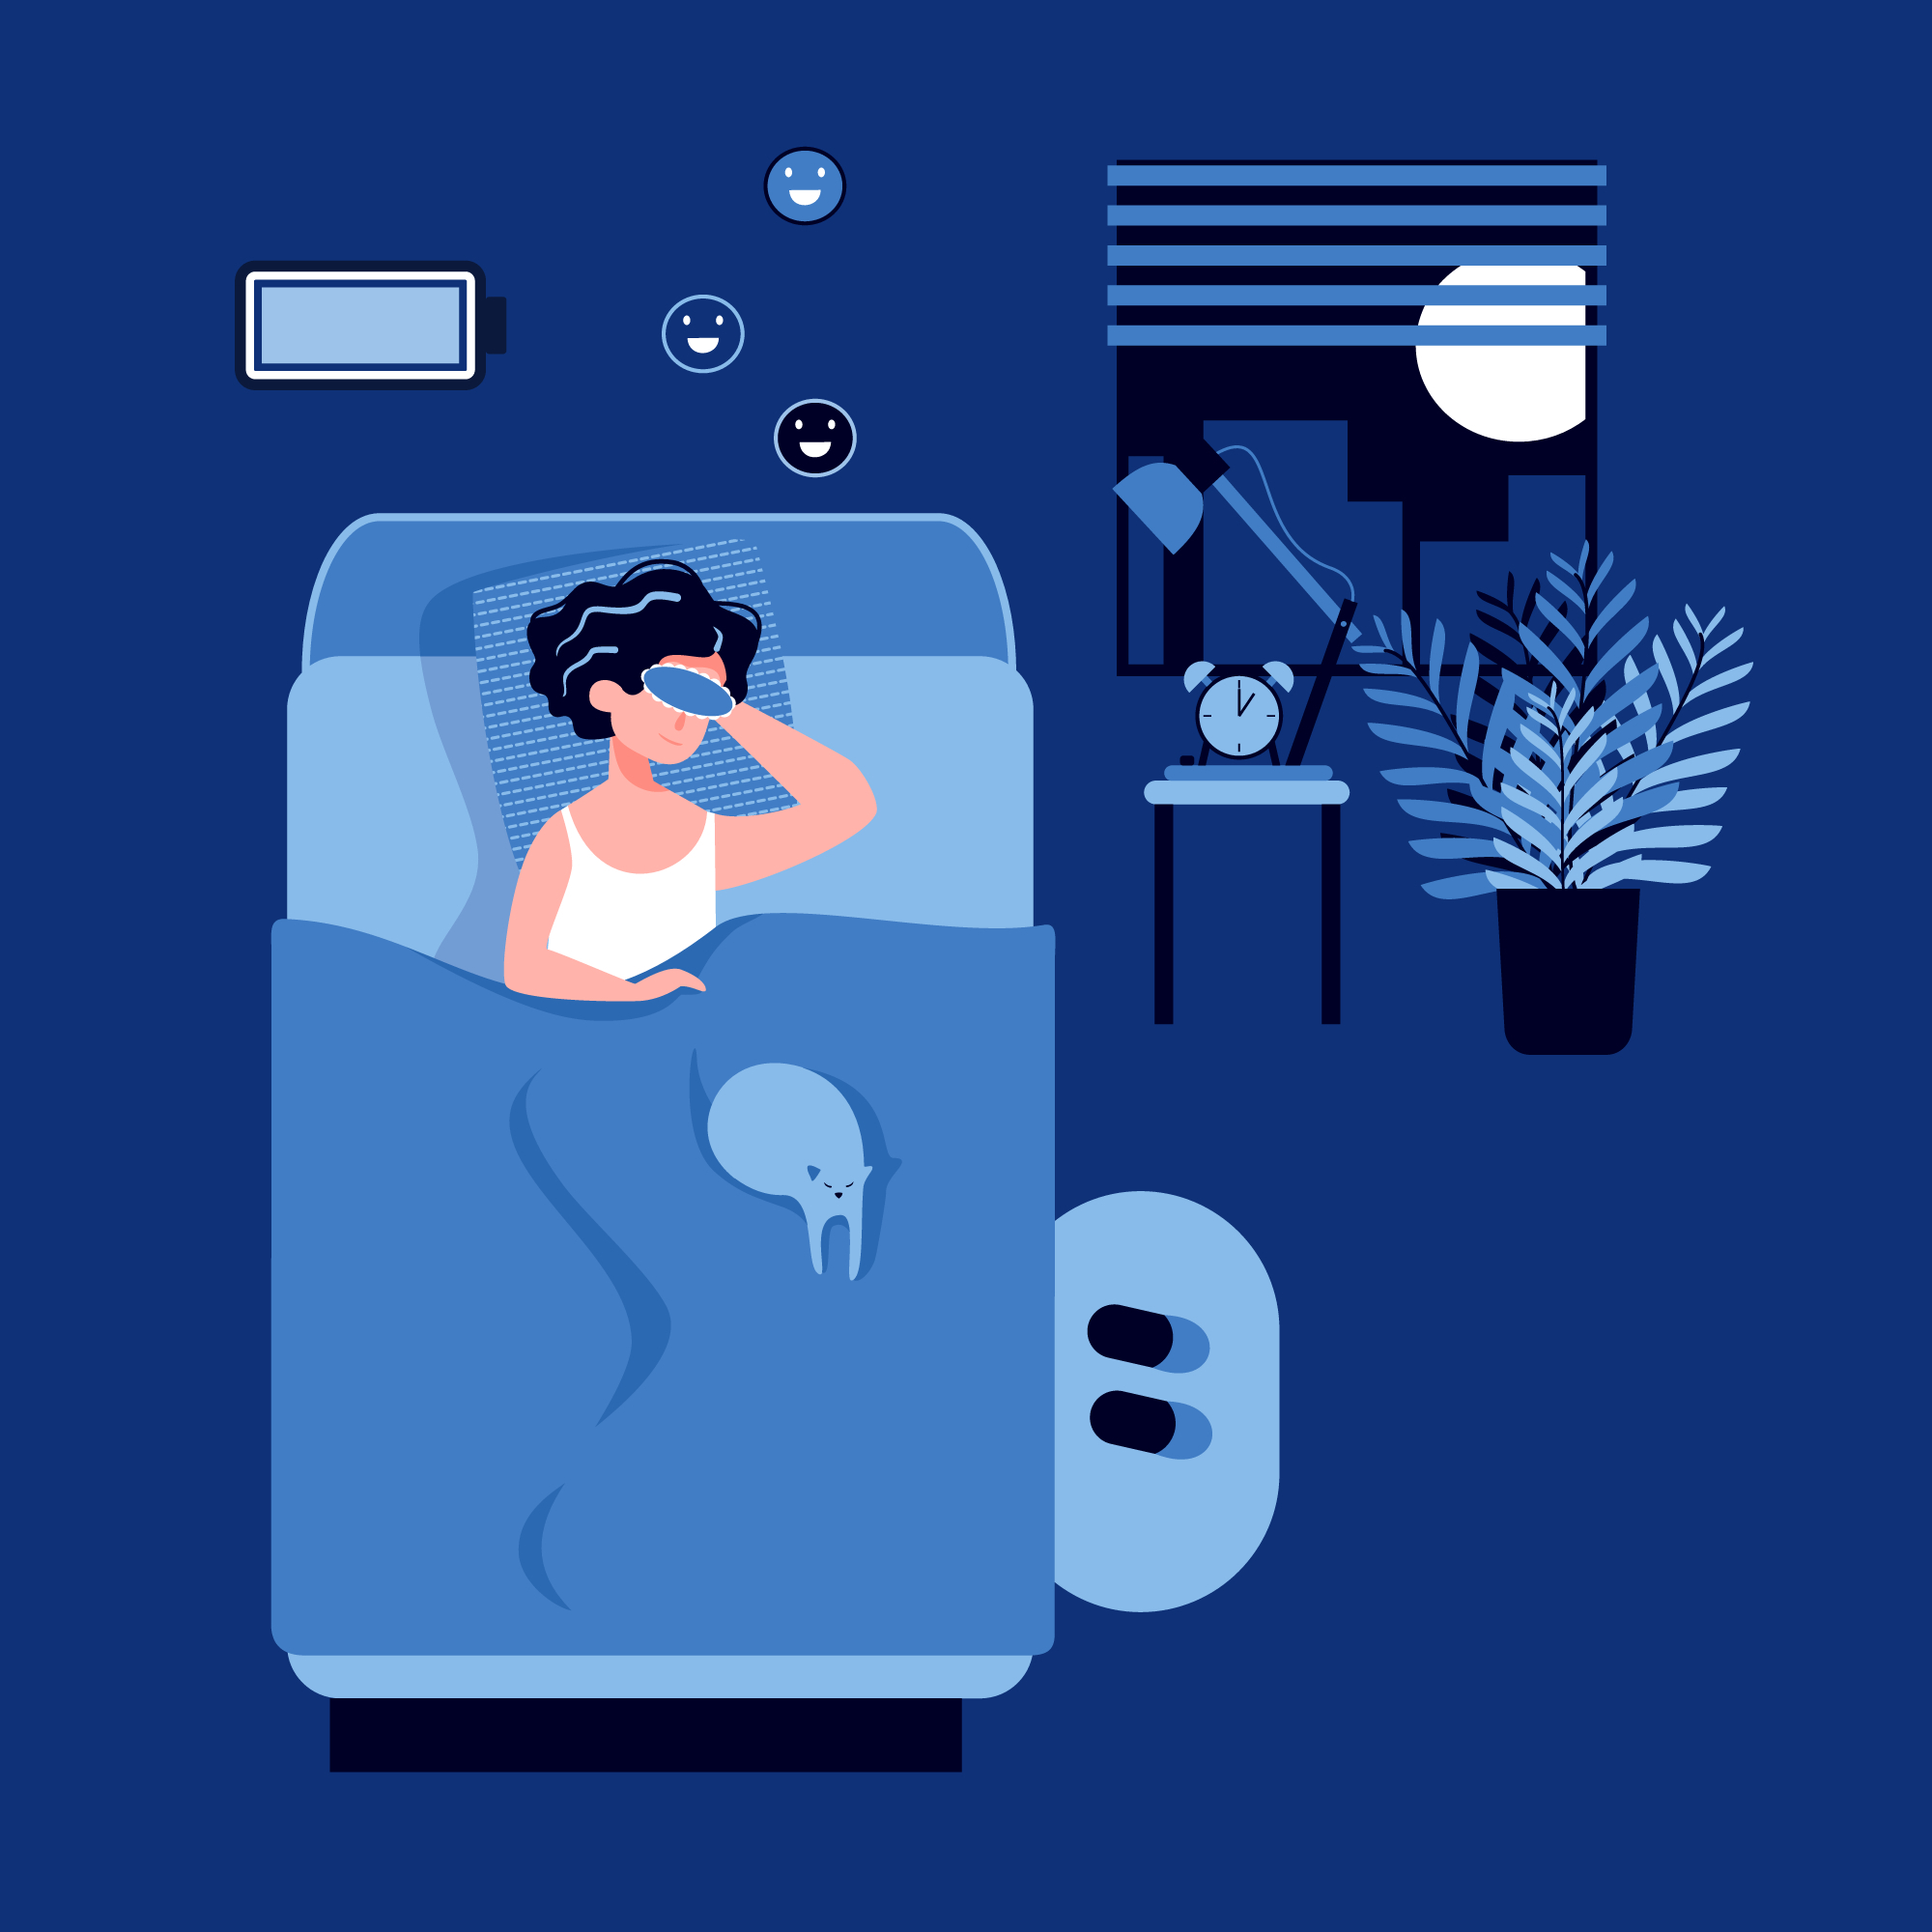 8 Experts Share Their Best Sleep Tips for 2020